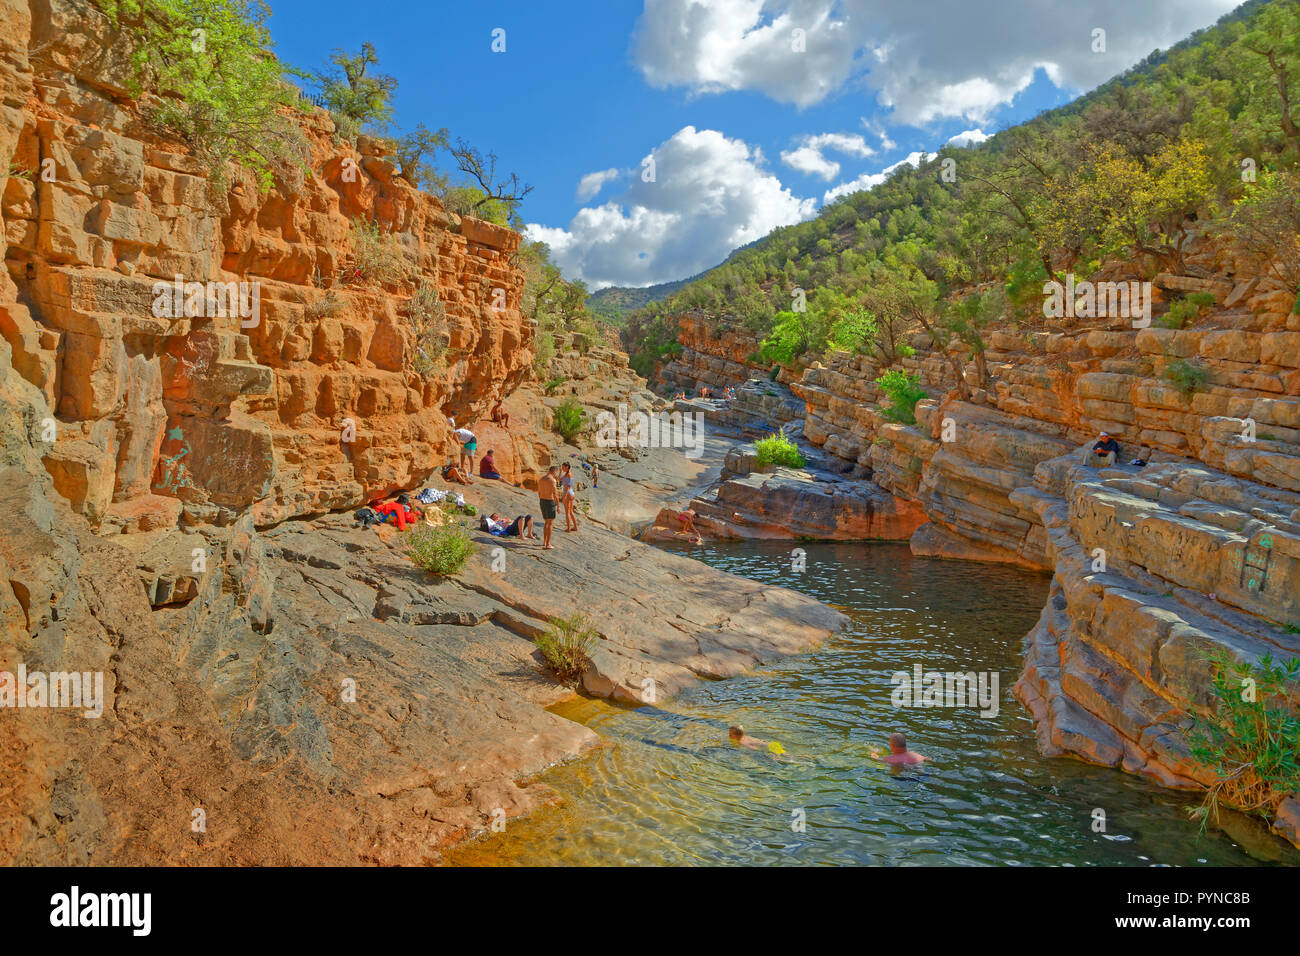 Ravine in the lower Atlas Mountains near Agadir, known as, and marketed under the name, Paradise Valley, Morocco, North West Africa. - Stock Image